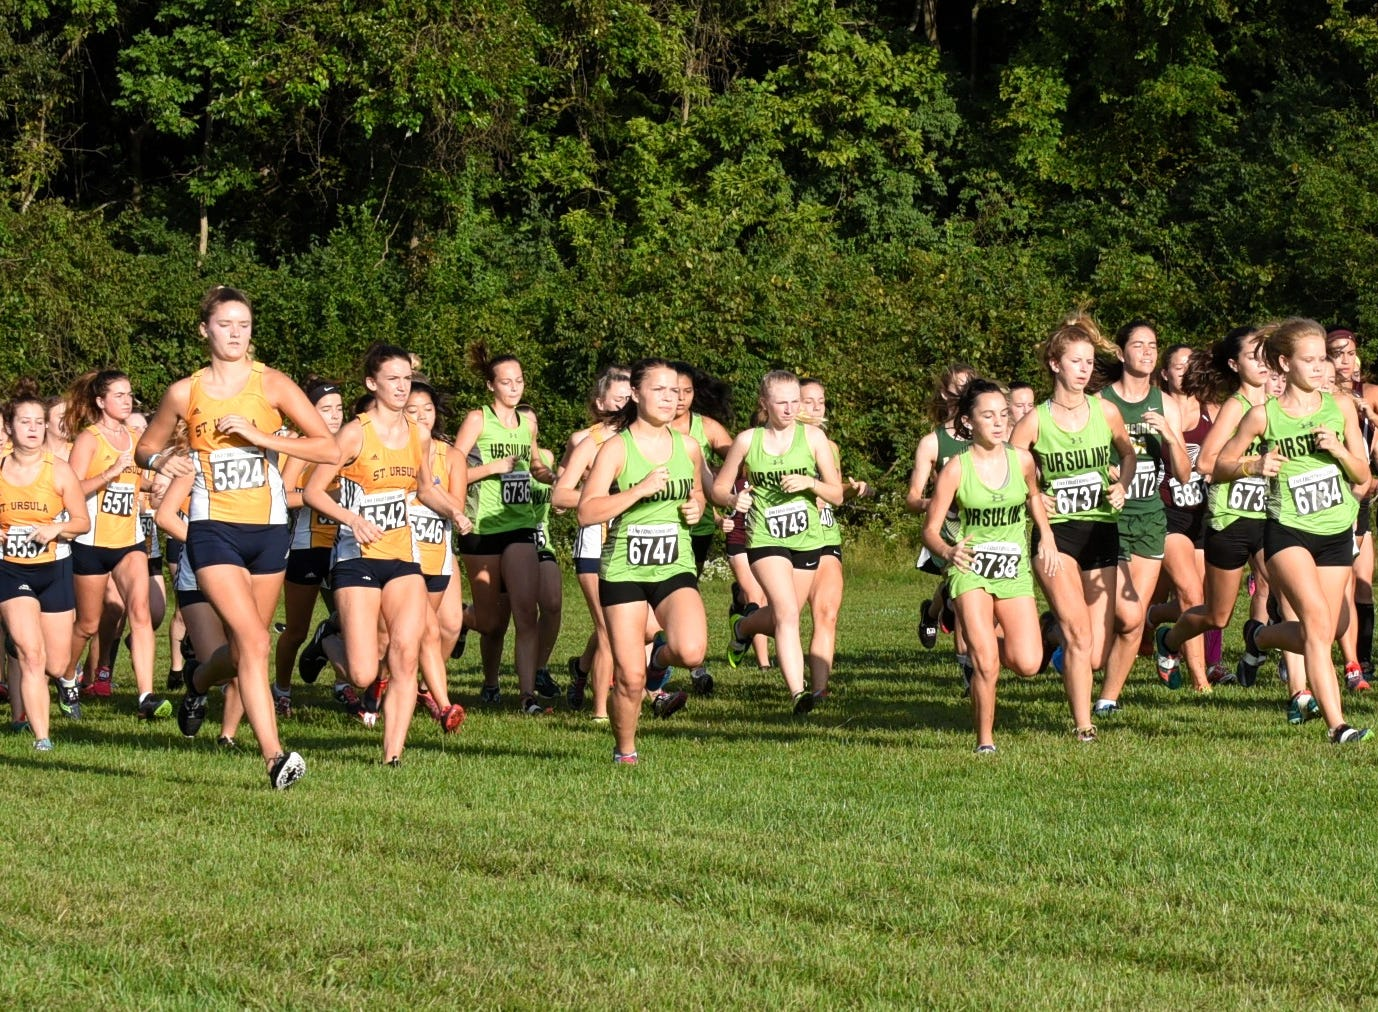 The ladies are off and running in the 5K girls open at the 2018 Milford Cross Country Invitational, Sept. 15, 2018.